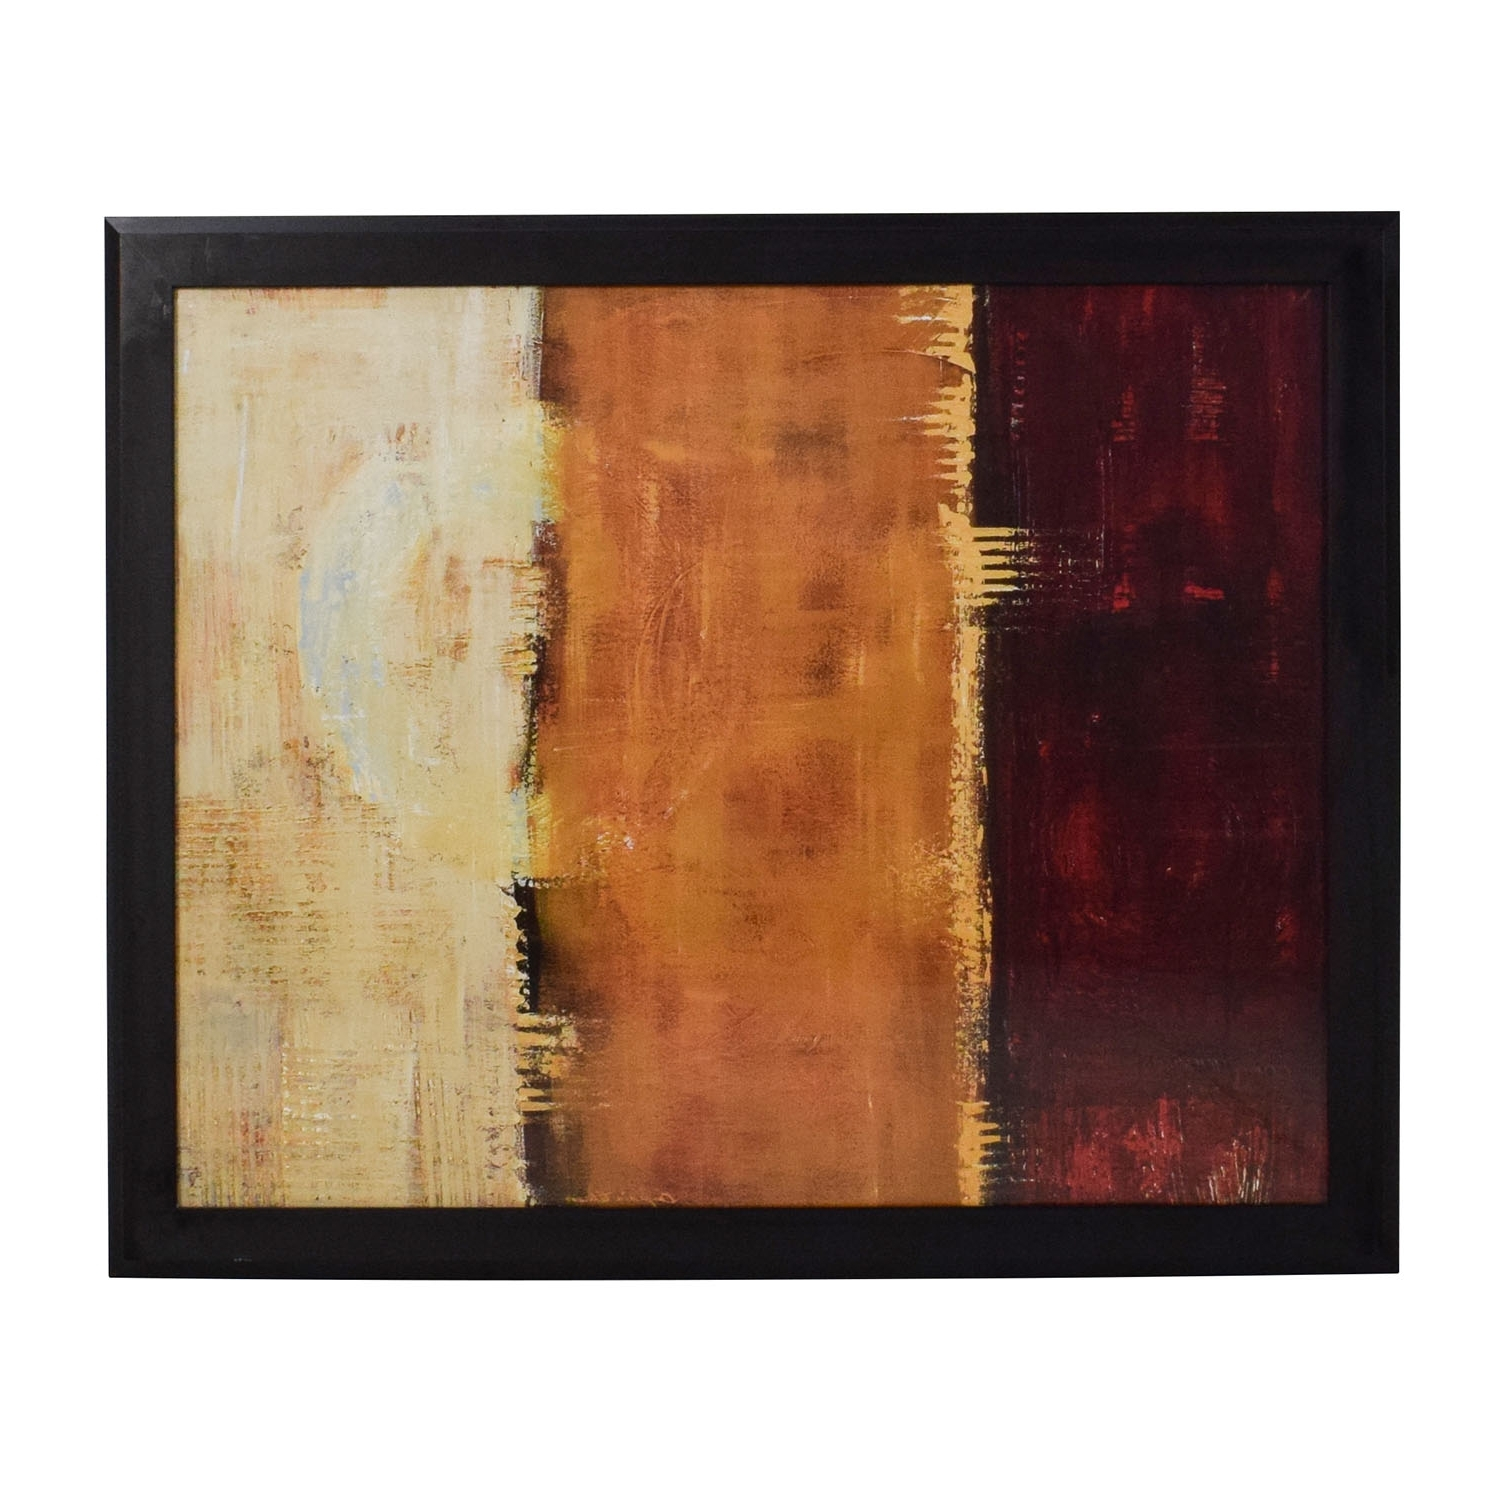 [%88% Off – Z Gallerie Z Gallerie Framed Canvas Red Orange Yellow Wall For Most Up To Date Z Gallerie Wall Art|Z Gallerie Wall Art Pertaining To Well Known 88% Off – Z Gallerie Z Gallerie Framed Canvas Red Orange Yellow Wall|Newest Z Gallerie Wall Art With 88% Off – Z Gallerie Z Gallerie Framed Canvas Red Orange Yellow Wall|Most Recently Released 88% Off – Z Gallerie Z Gallerie Framed Canvas Red Orange Yellow Wall Inside Z Gallerie Wall Art%] (View 1 of 15)